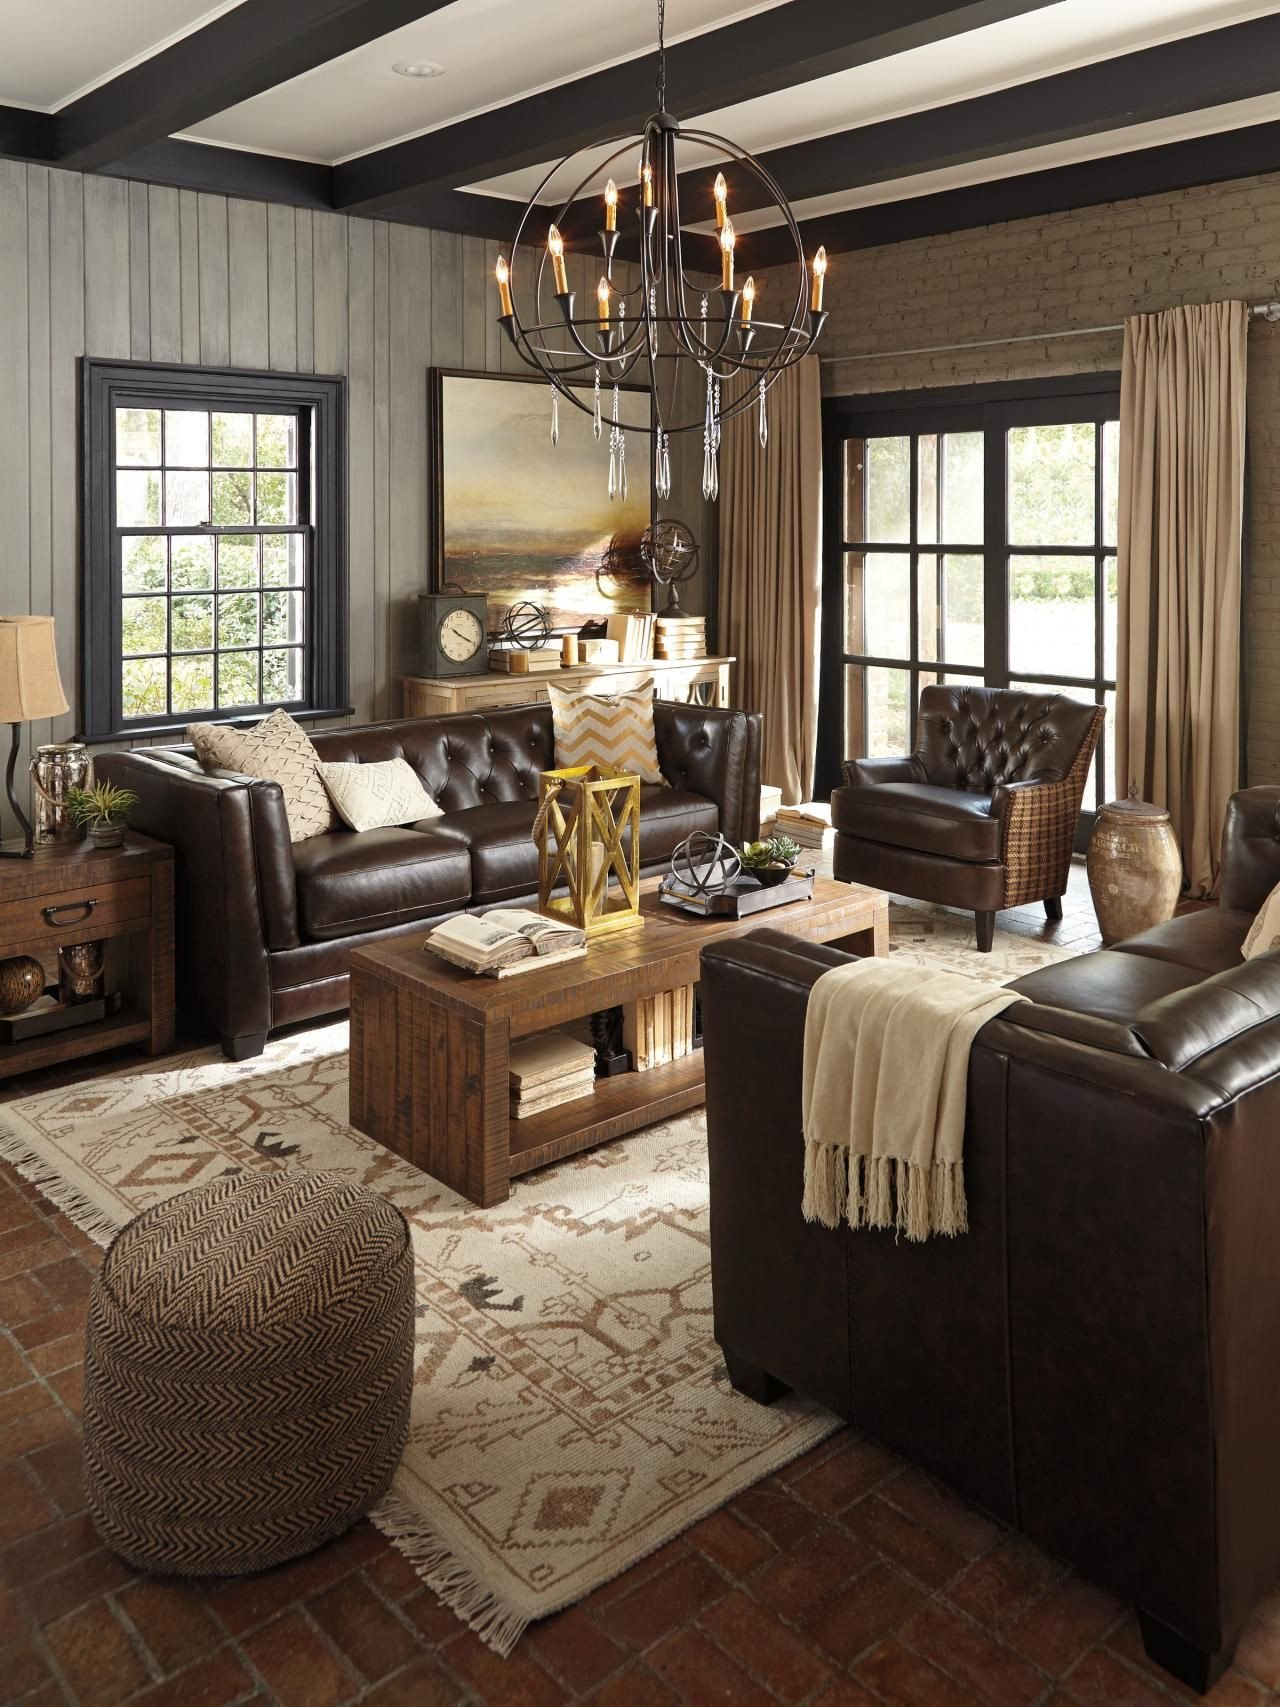 Brown Living Room Decor Ideas Dark Chocolate and Cream—such A Deliciously Rich Look